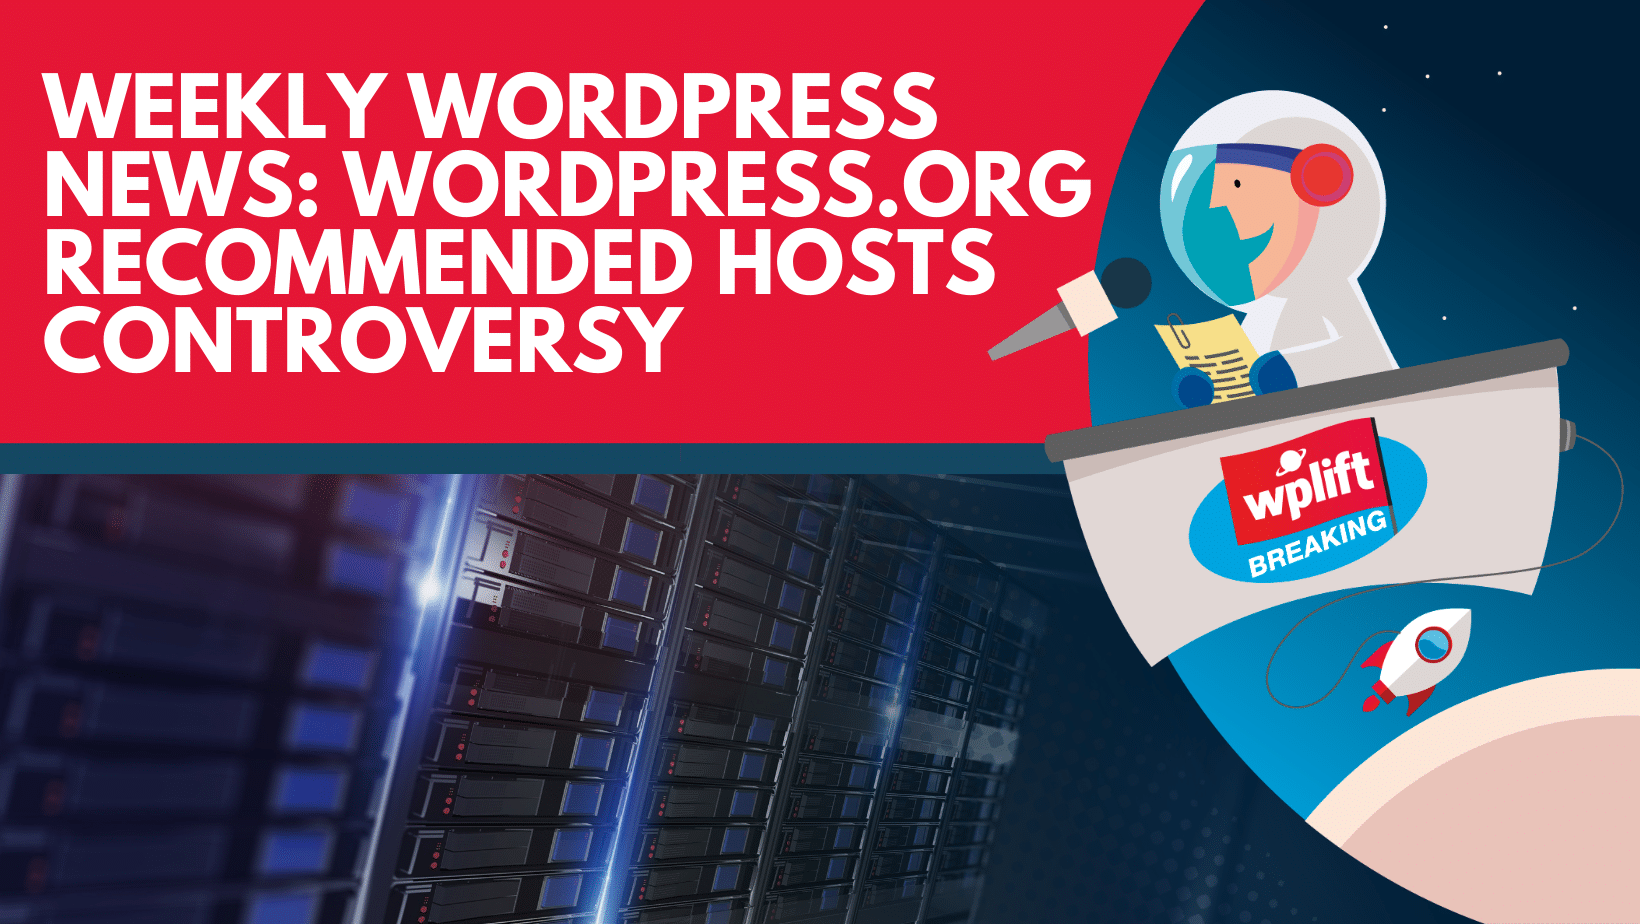 Weekly WordPress News: WordPress.org Recommended Hosts Controversy